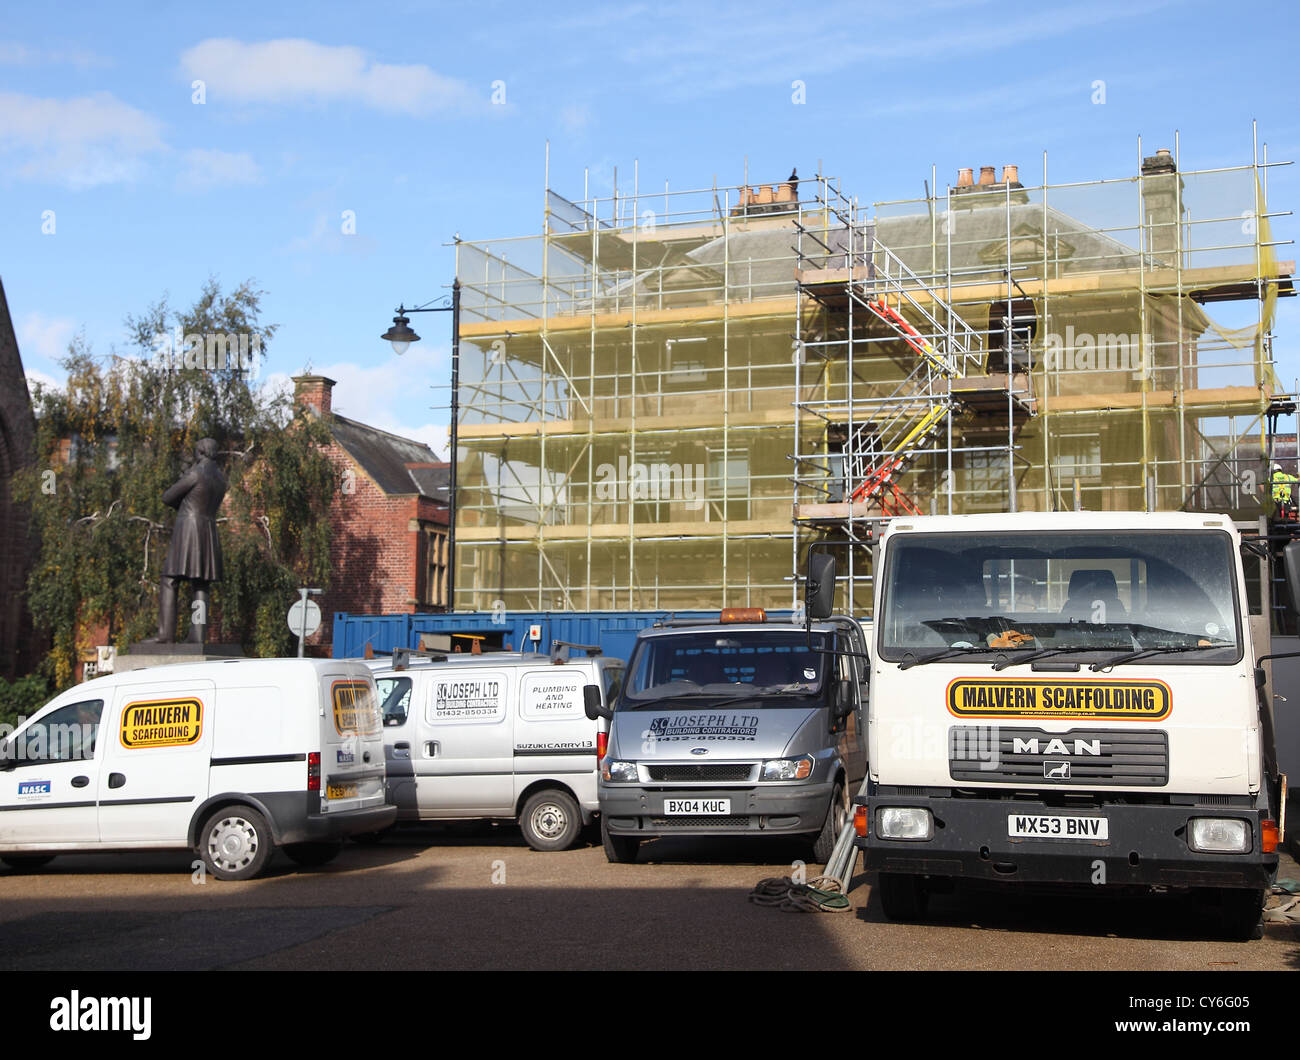 Scaffolder's trucks in font of a building renovation project in Hereford, England, UK. October 2012 - Stock Image